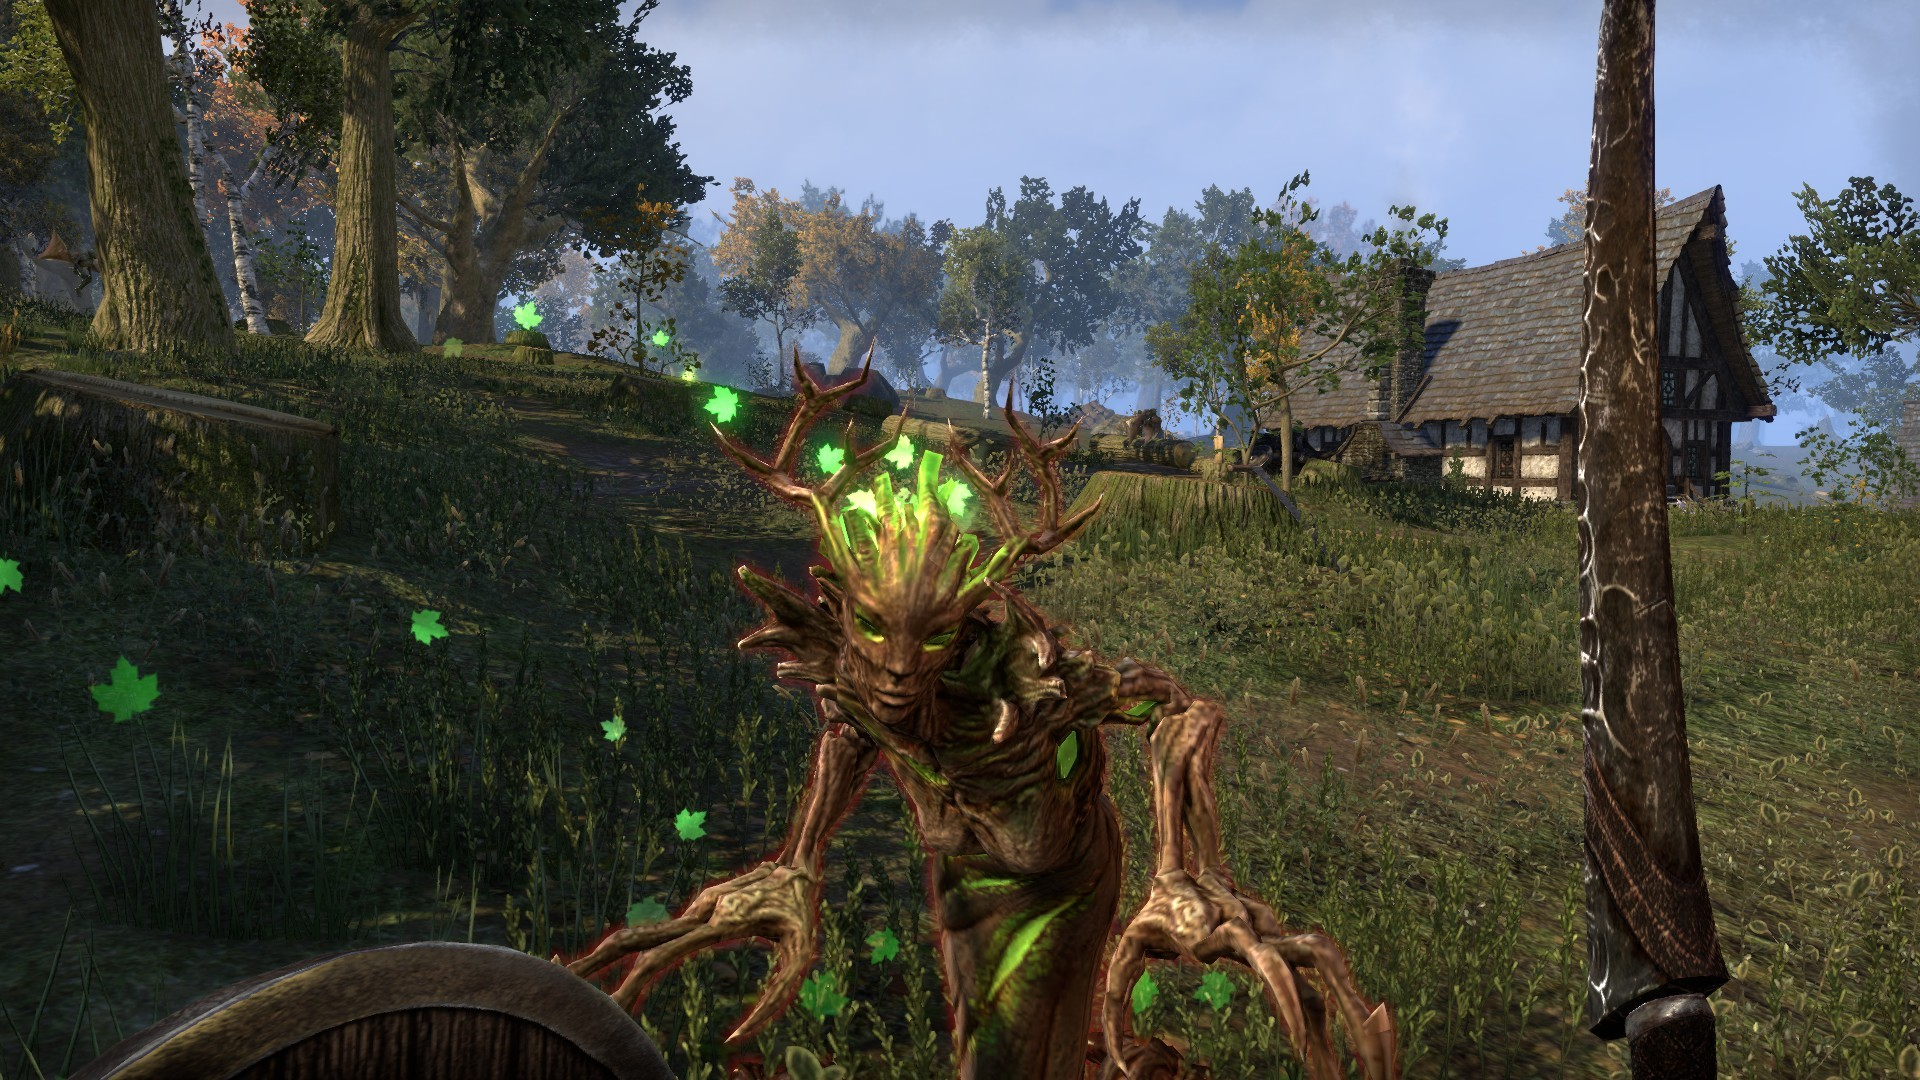 Elder Scrolls Online - Time to get some wood...